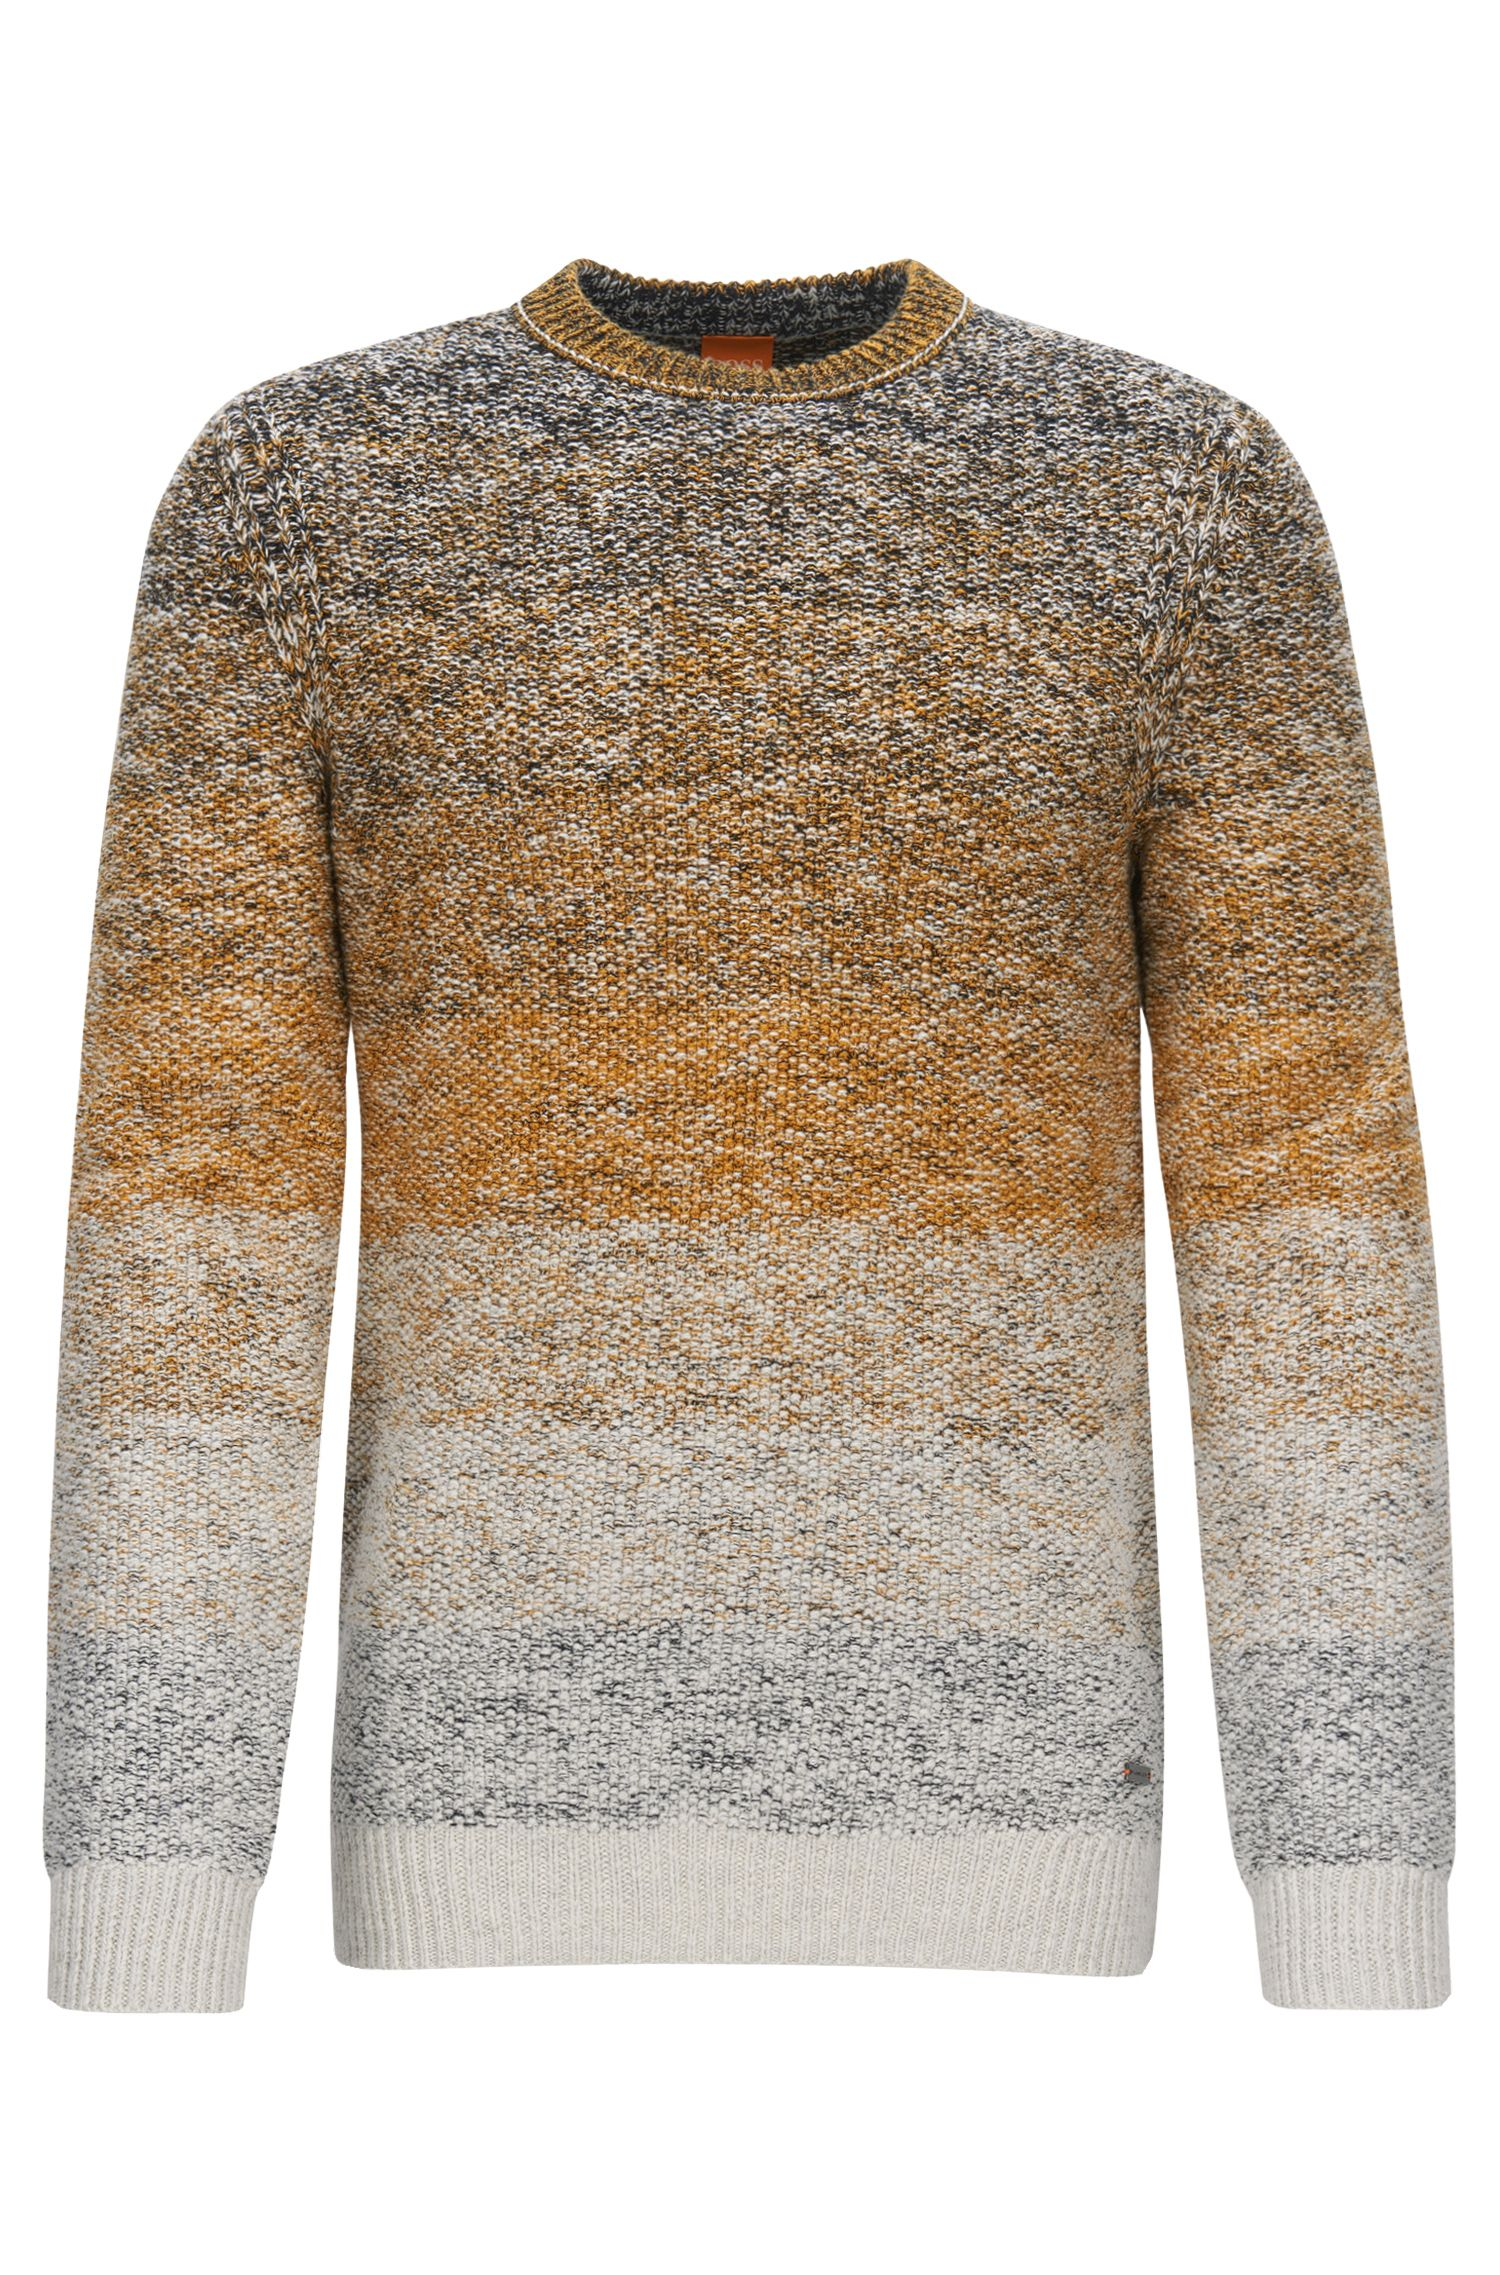 Crew-neck sweater in dégradée cotton